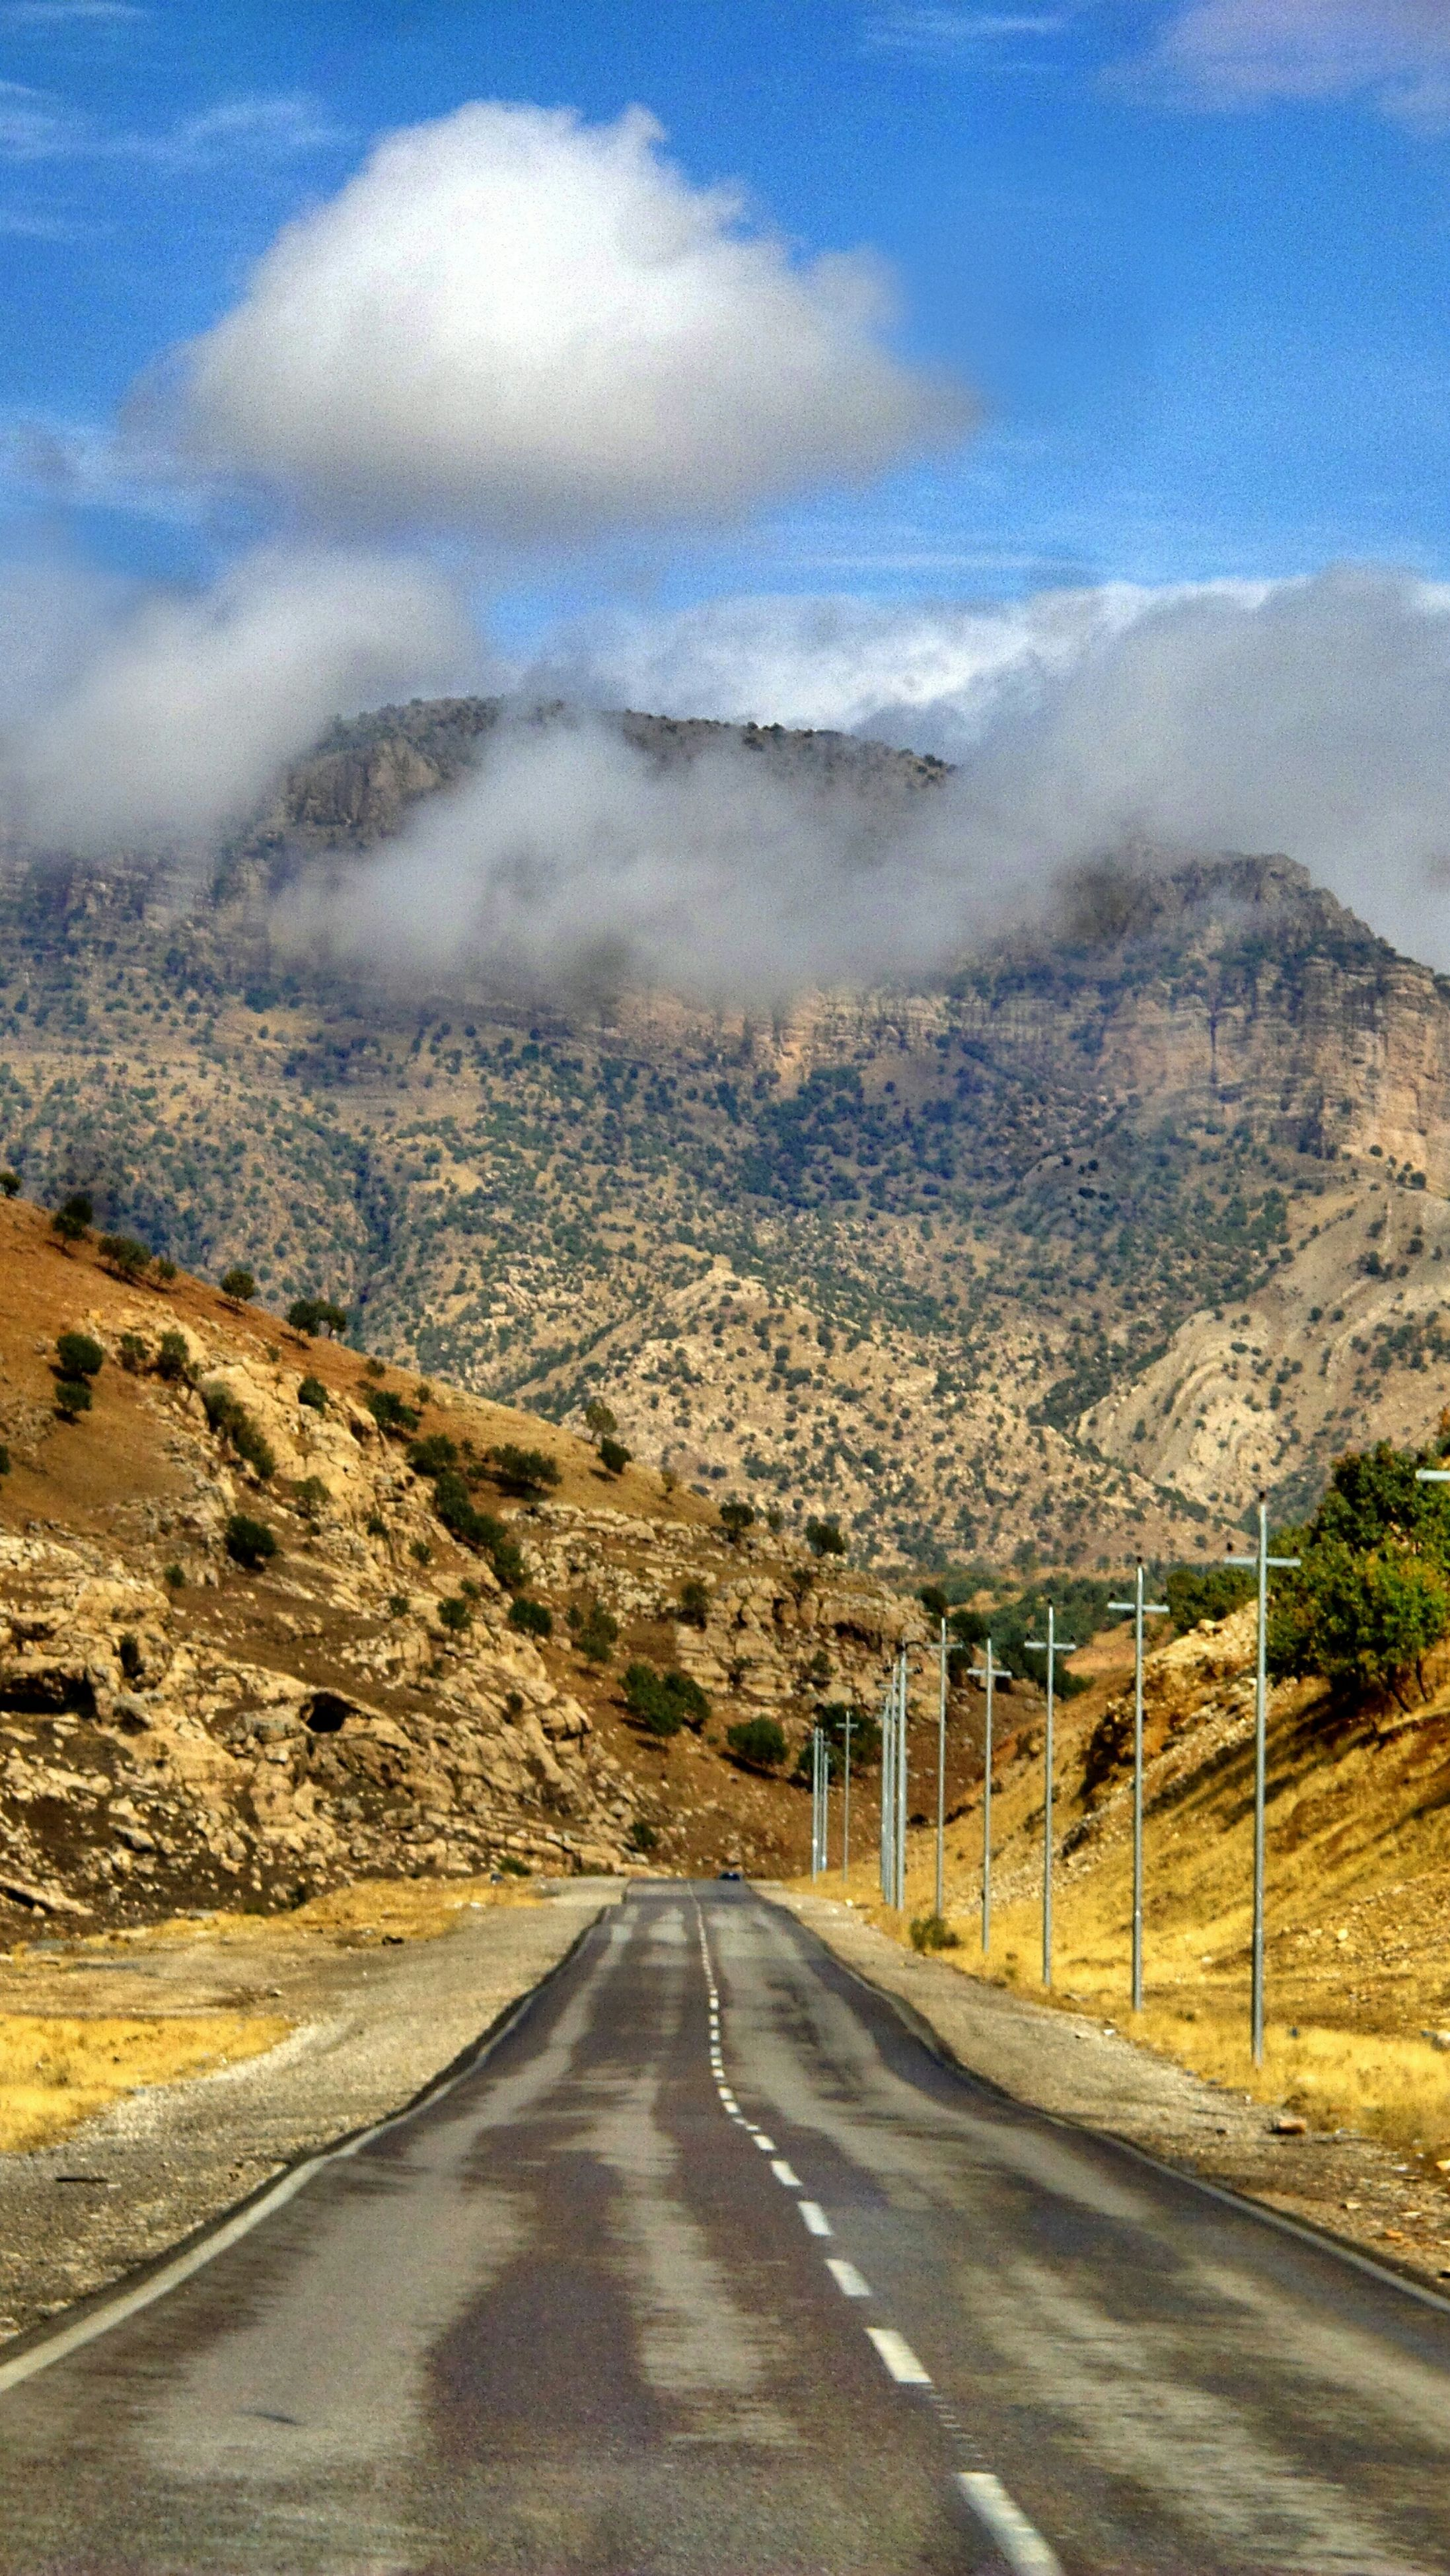 the way forward, road, sky, transportation, mountain, diminishing perspective, country road, vanishing point, landscape, cloud - sky, road marking, empty road, tranquil scene, nature, scenics, tranquility, cloud, beauty in nature, street, mountain range